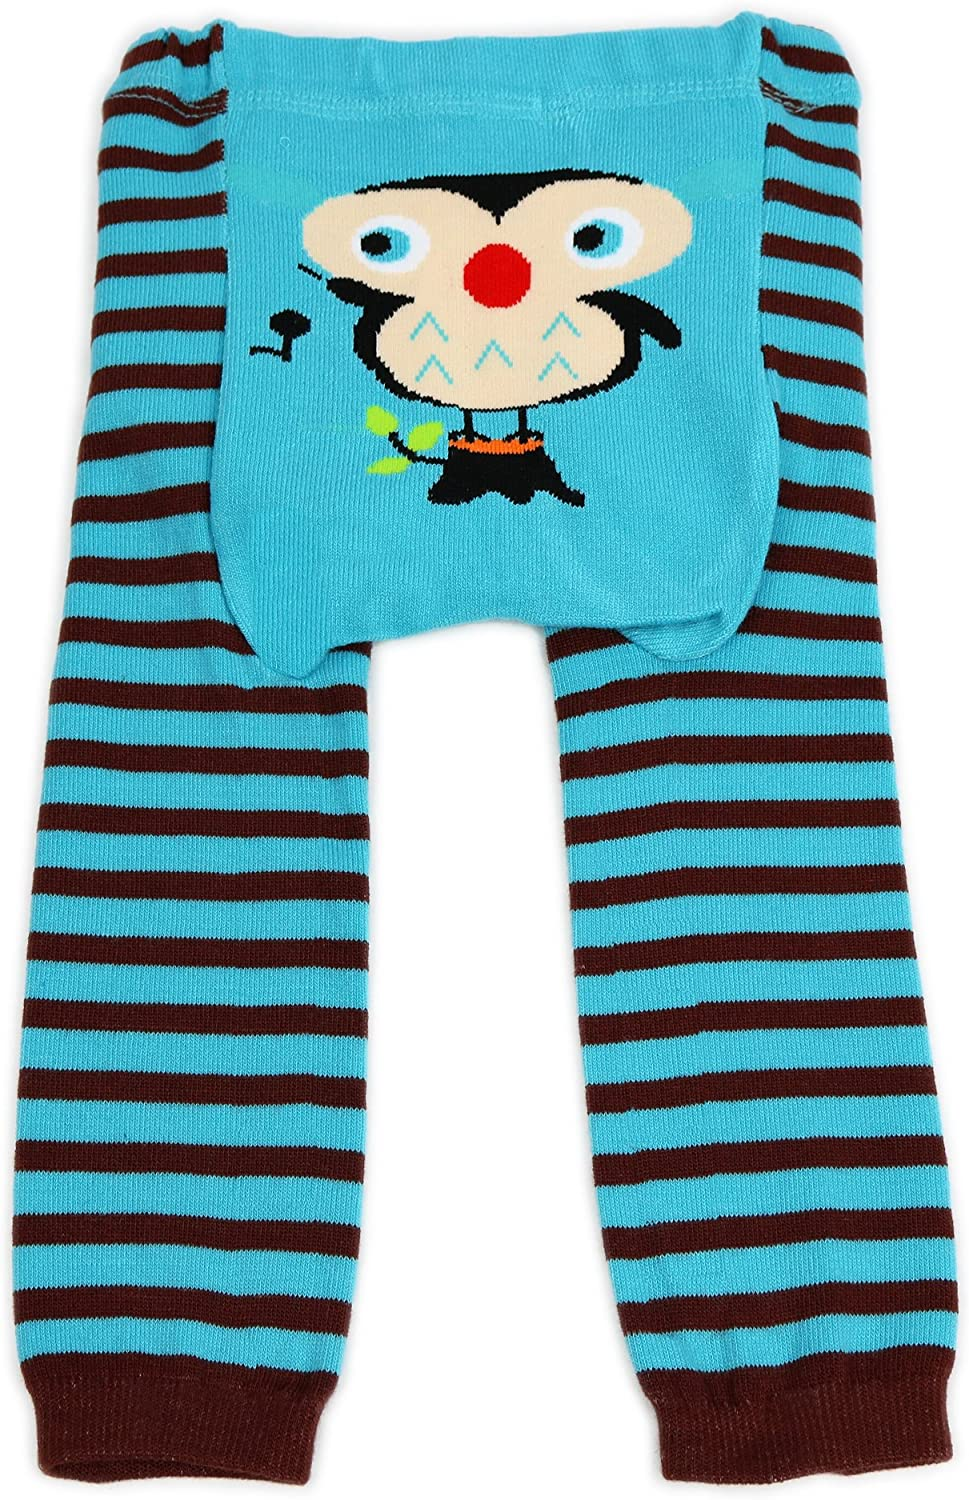 6-12 months Baby /& Toddler Wooly Leggings by Dotty Fish 12-24 months /& 24+ months Girls and Boys Designs